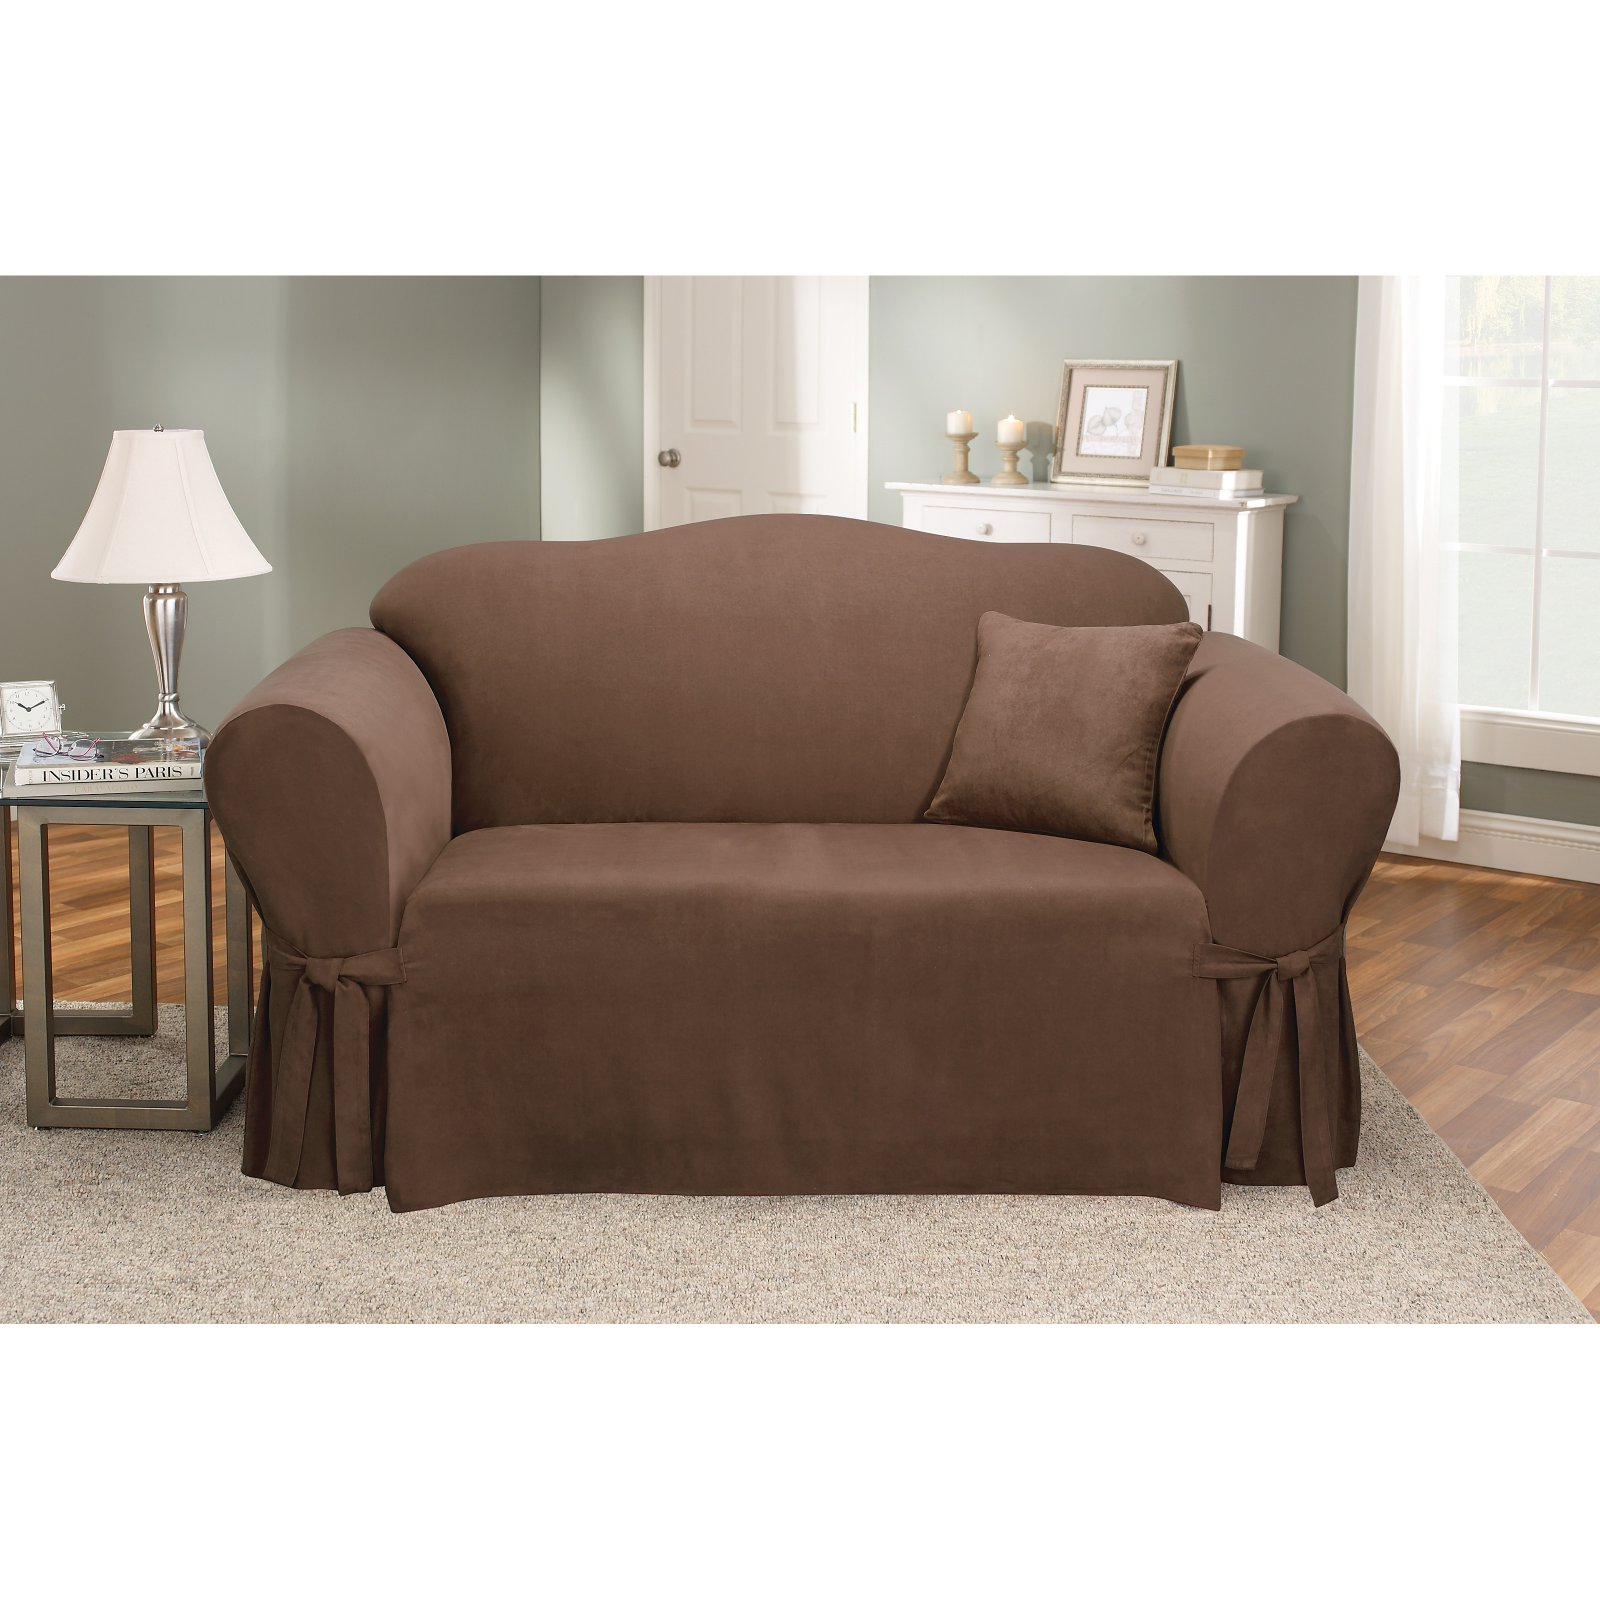 Sure Fit Soft Suede Sofa Slipcover Walmart